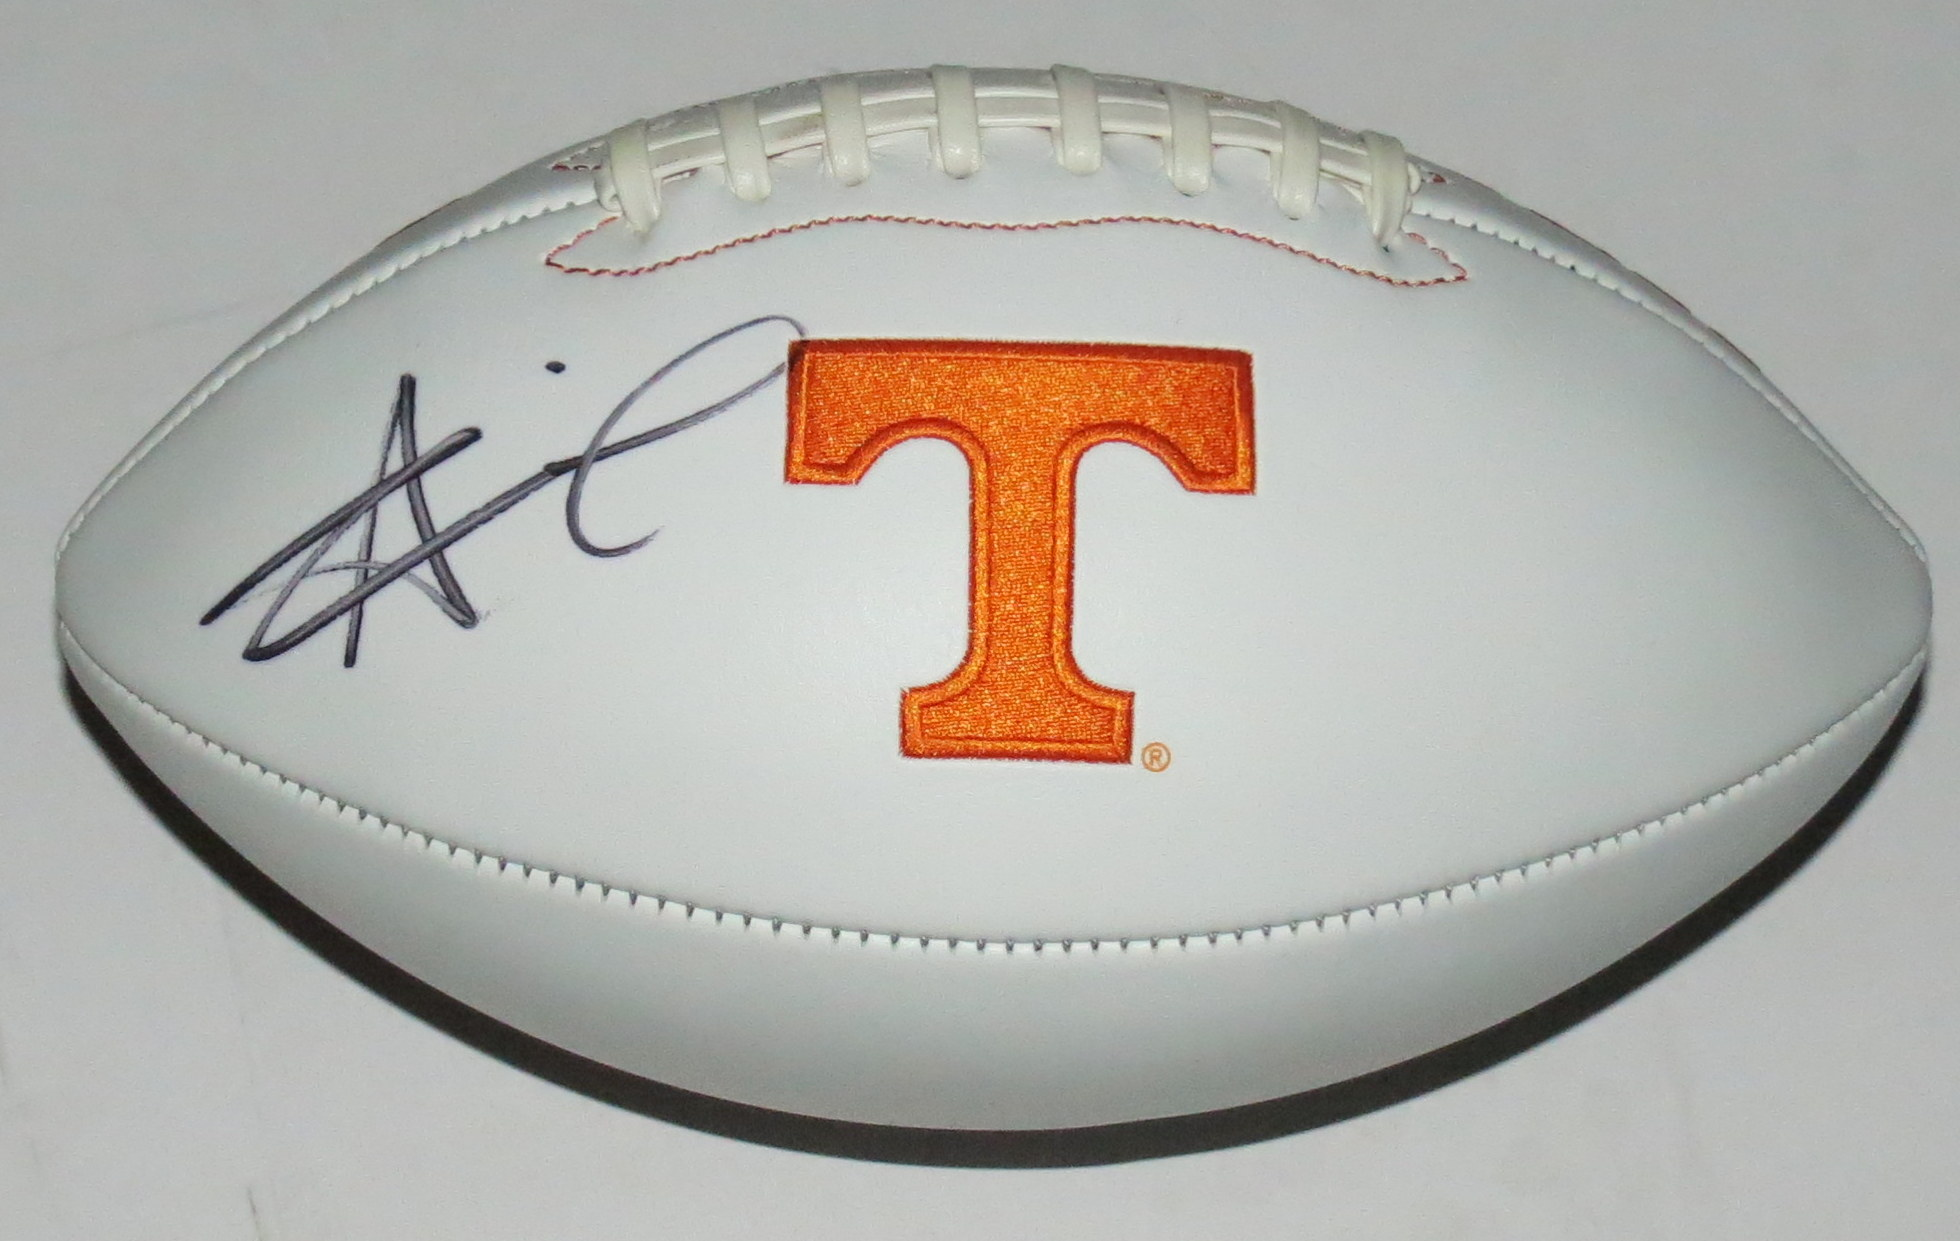 Alvin Kamara Signed Tennessee Volunteers Football - Beckett Authentication Services COA Authenticated